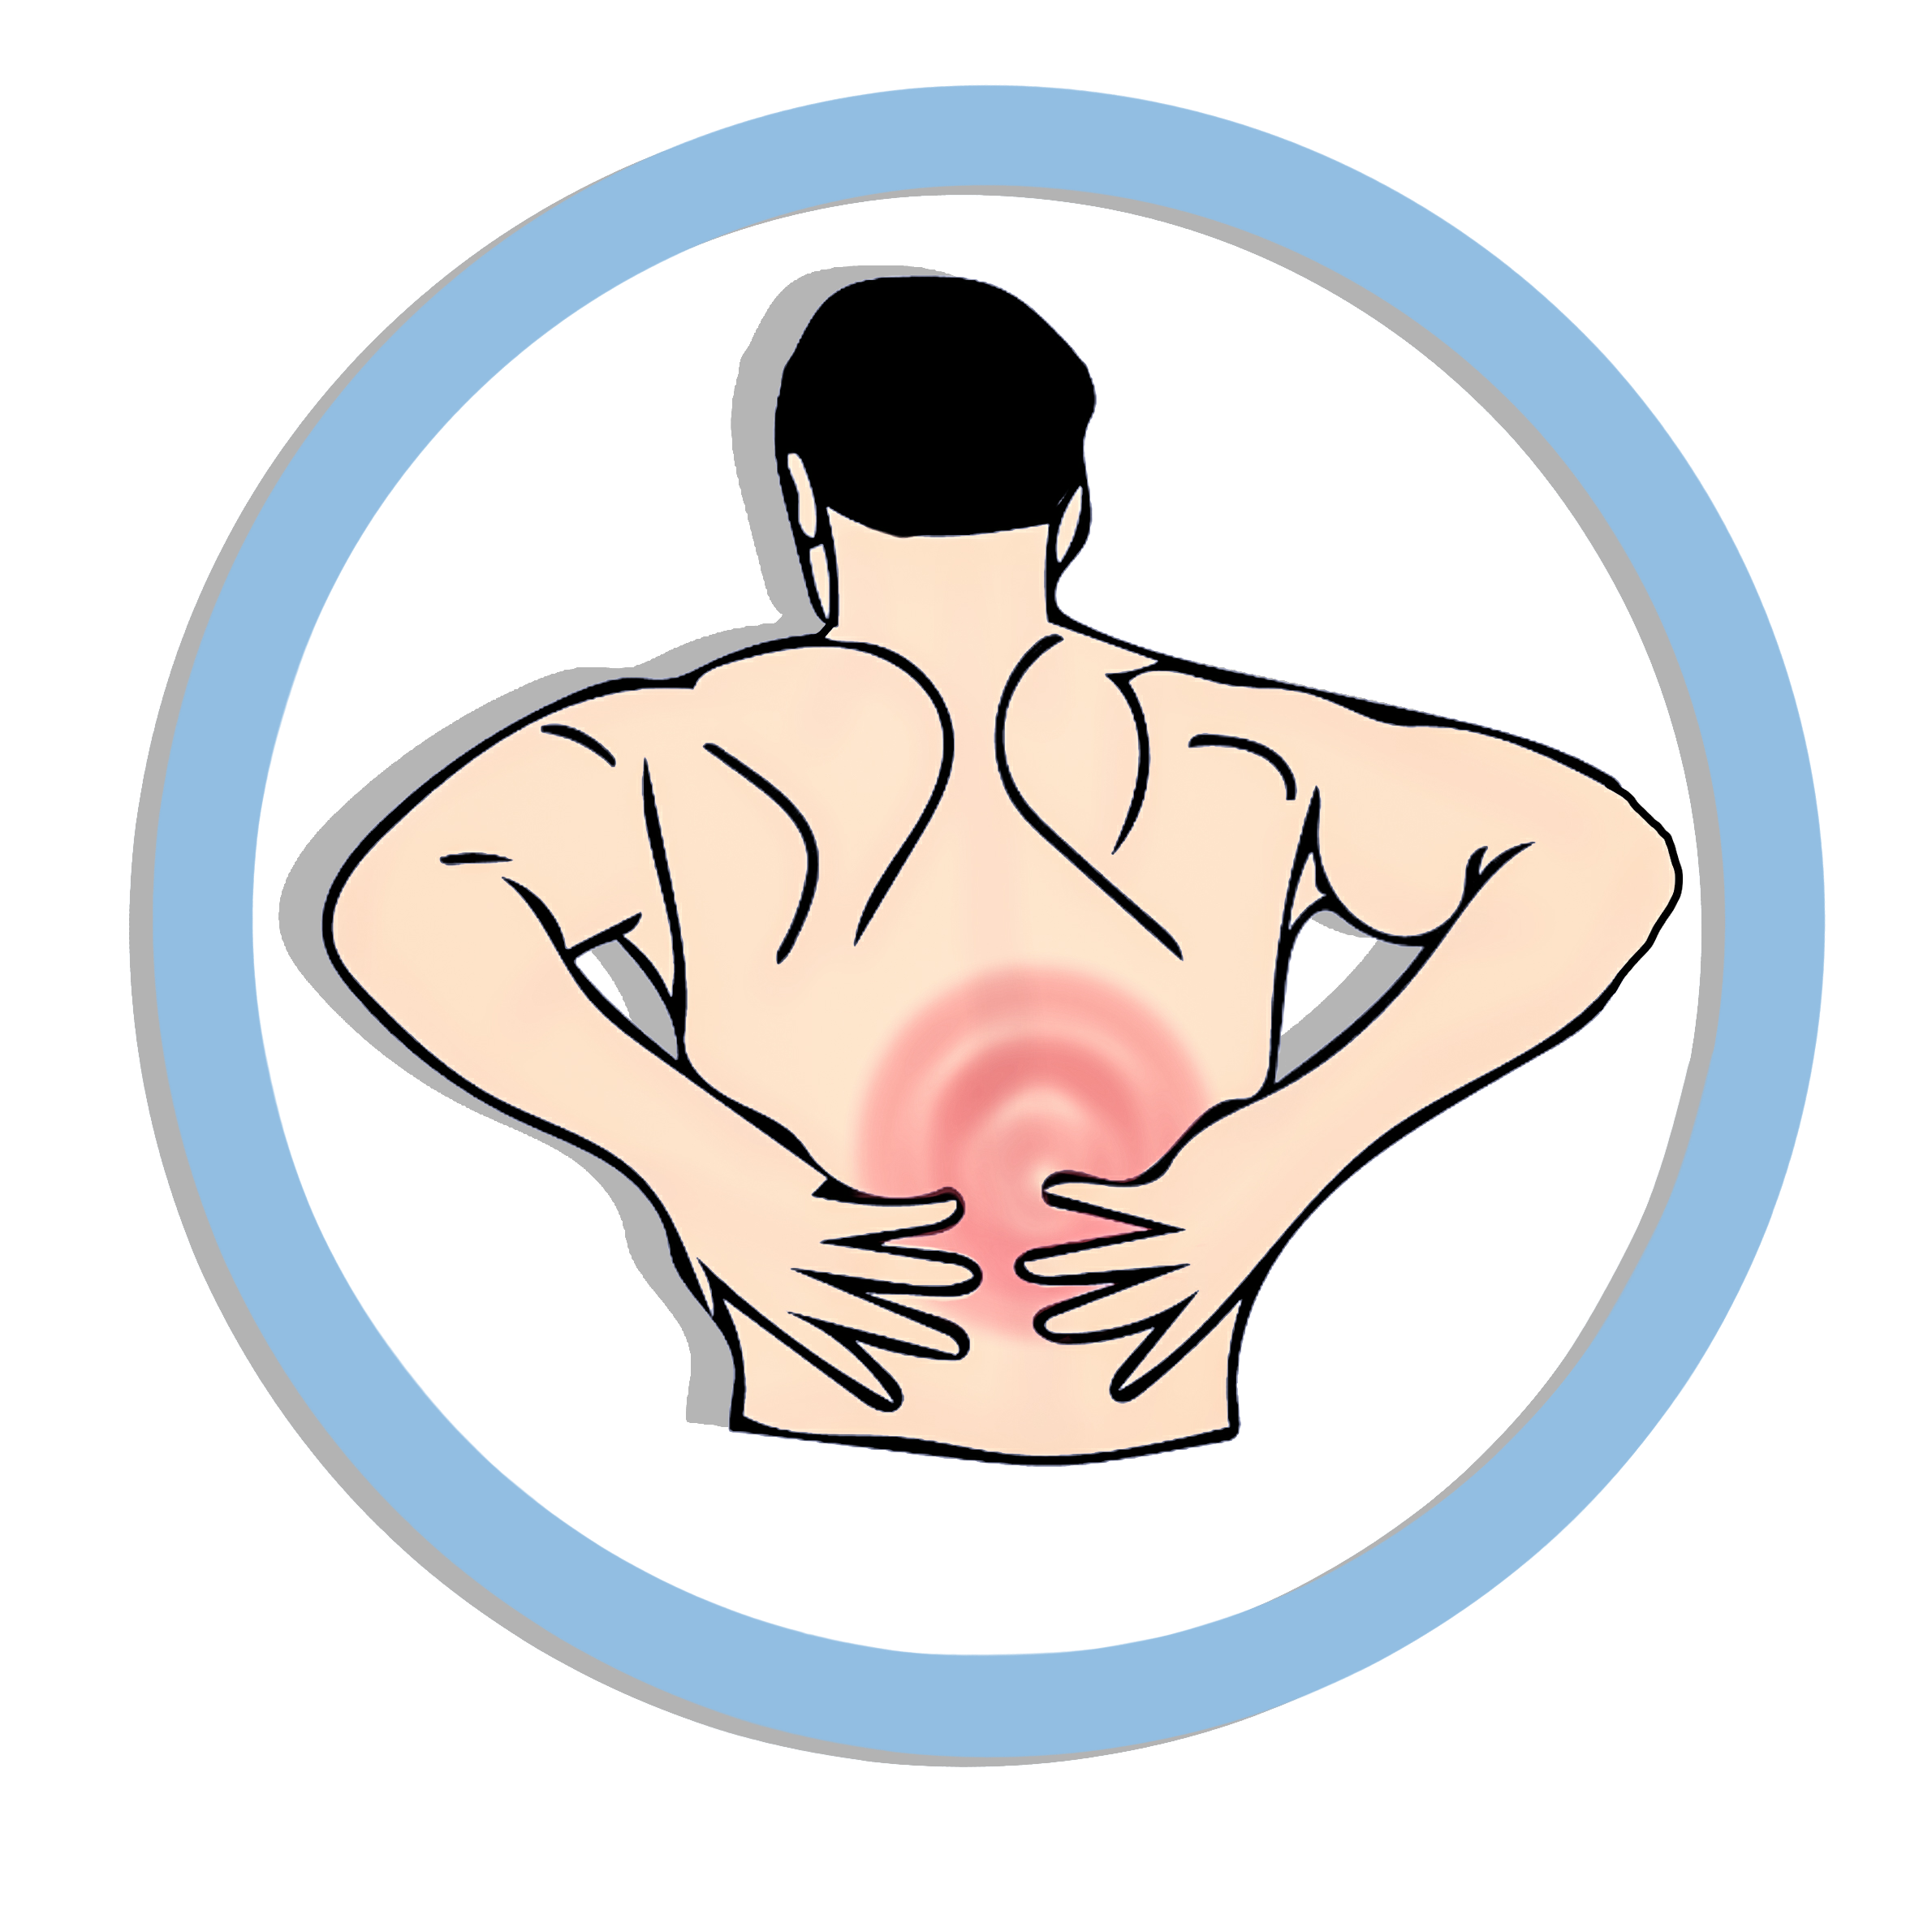 Back clipart muscle pain, Picture #244768 back clipart.